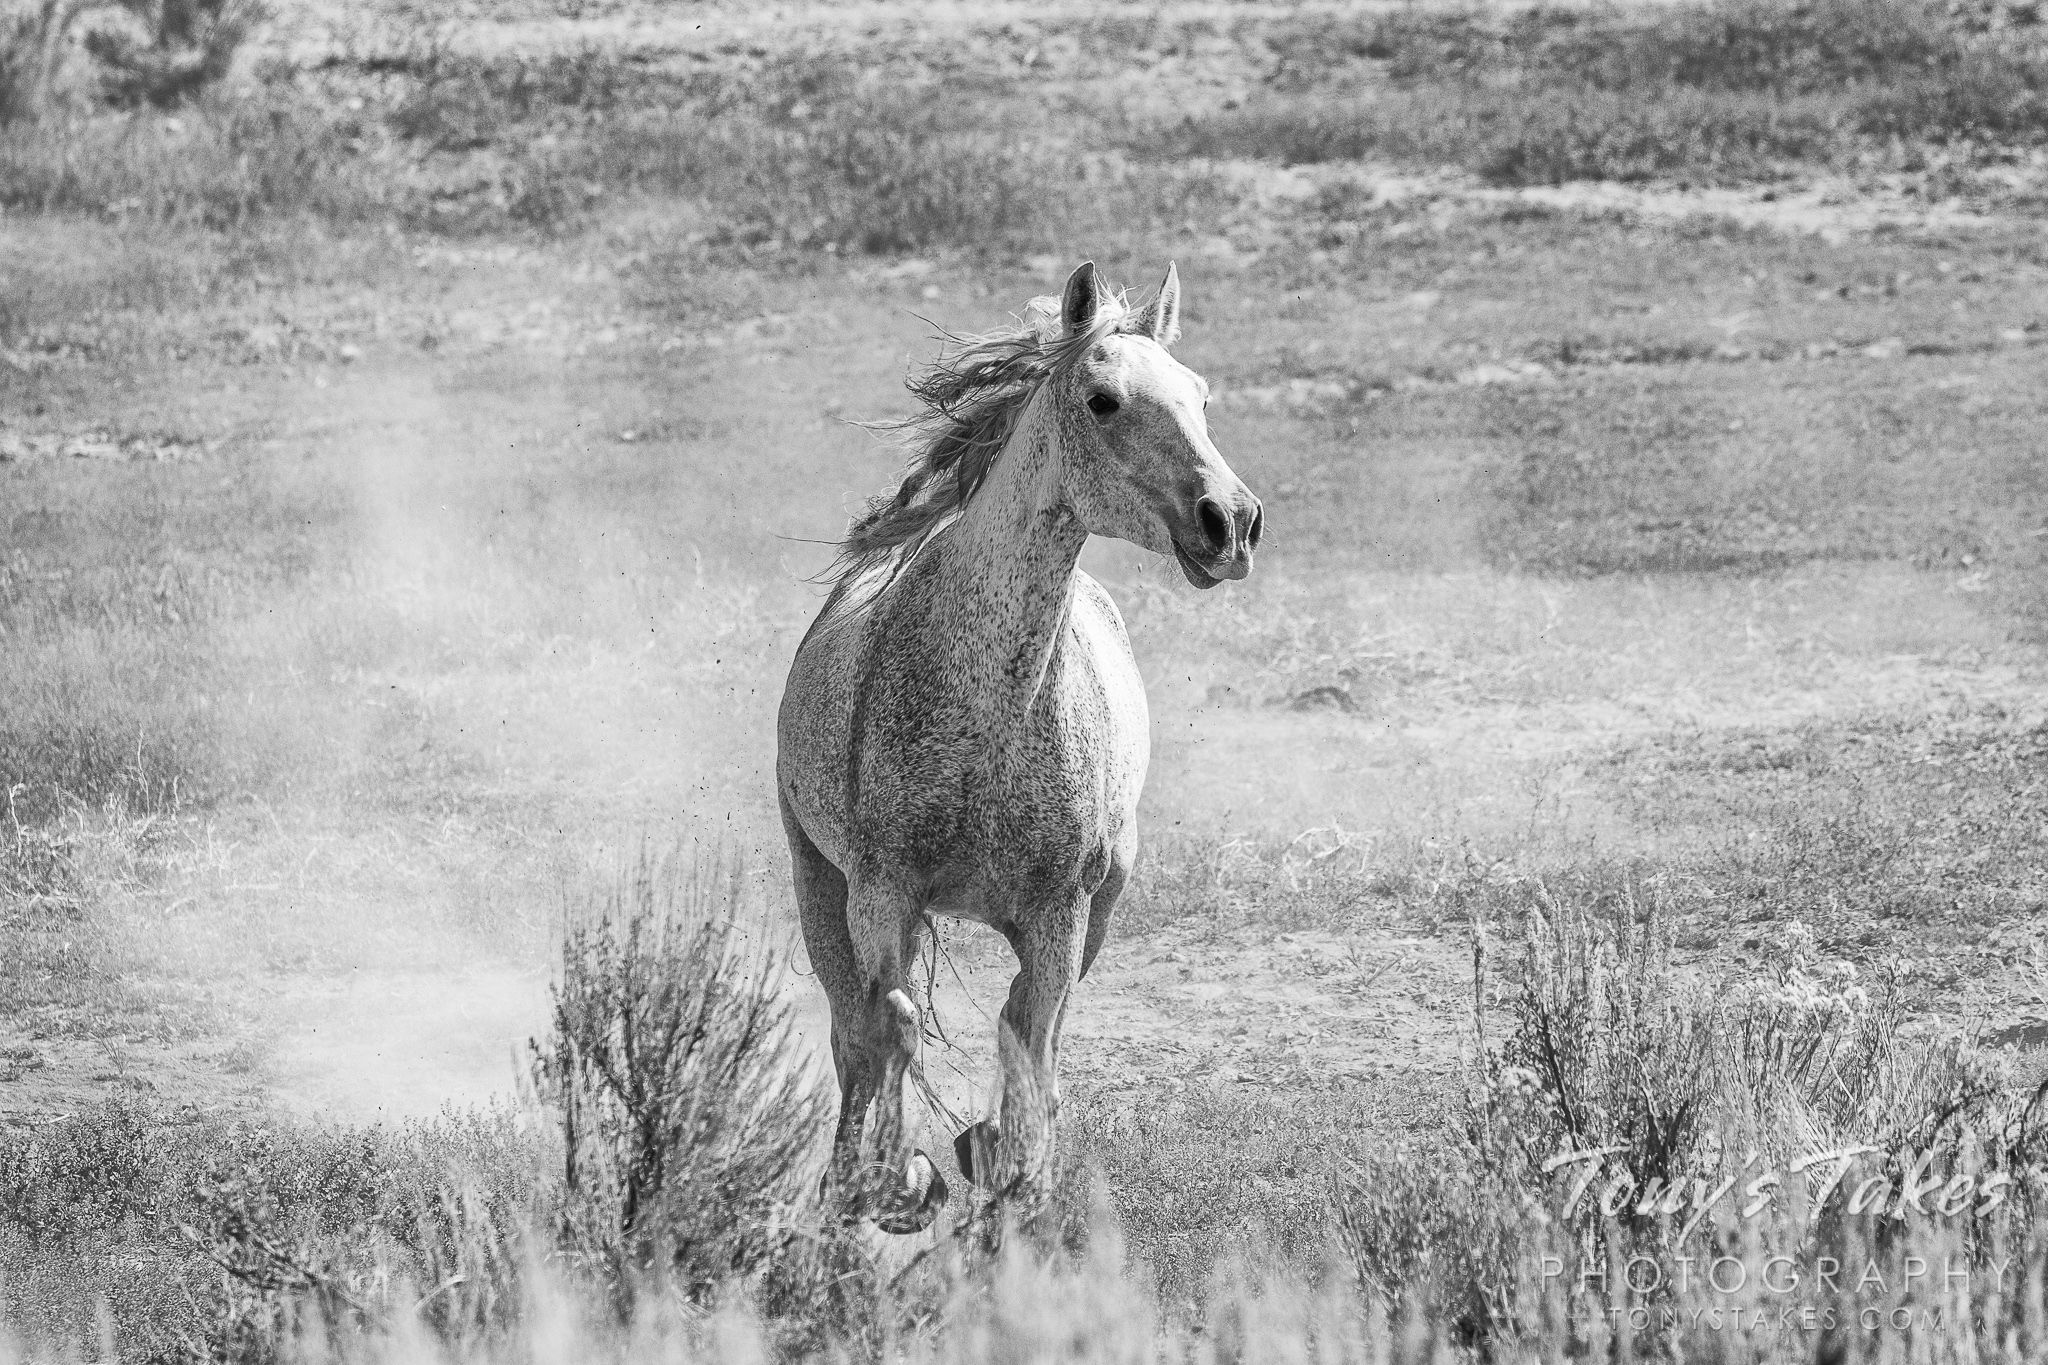 Stallion on the run in black and white